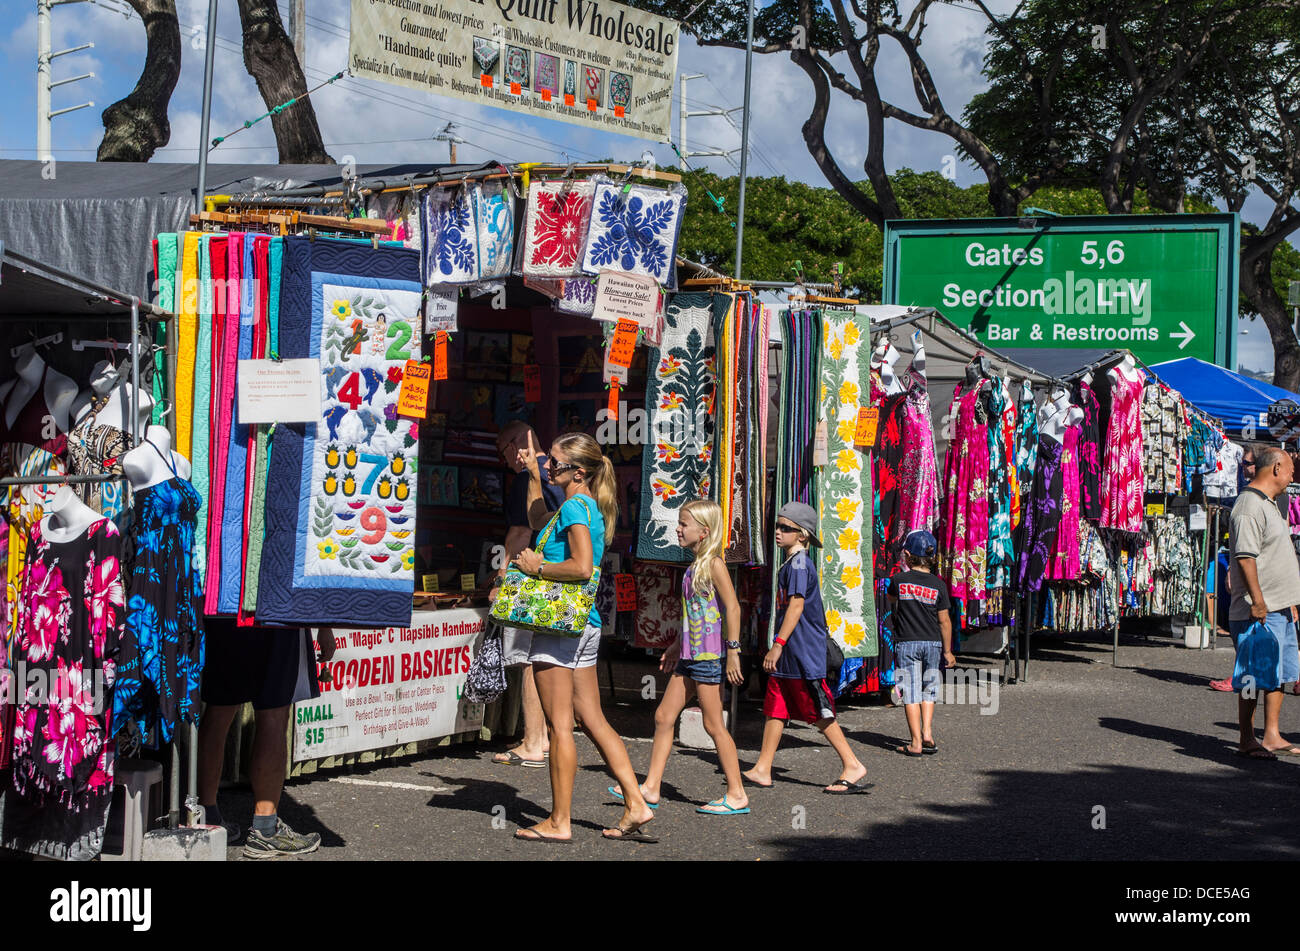 USA, Hawaii, Oahu, Honolulu  Crowds shop for quilts and clothing at